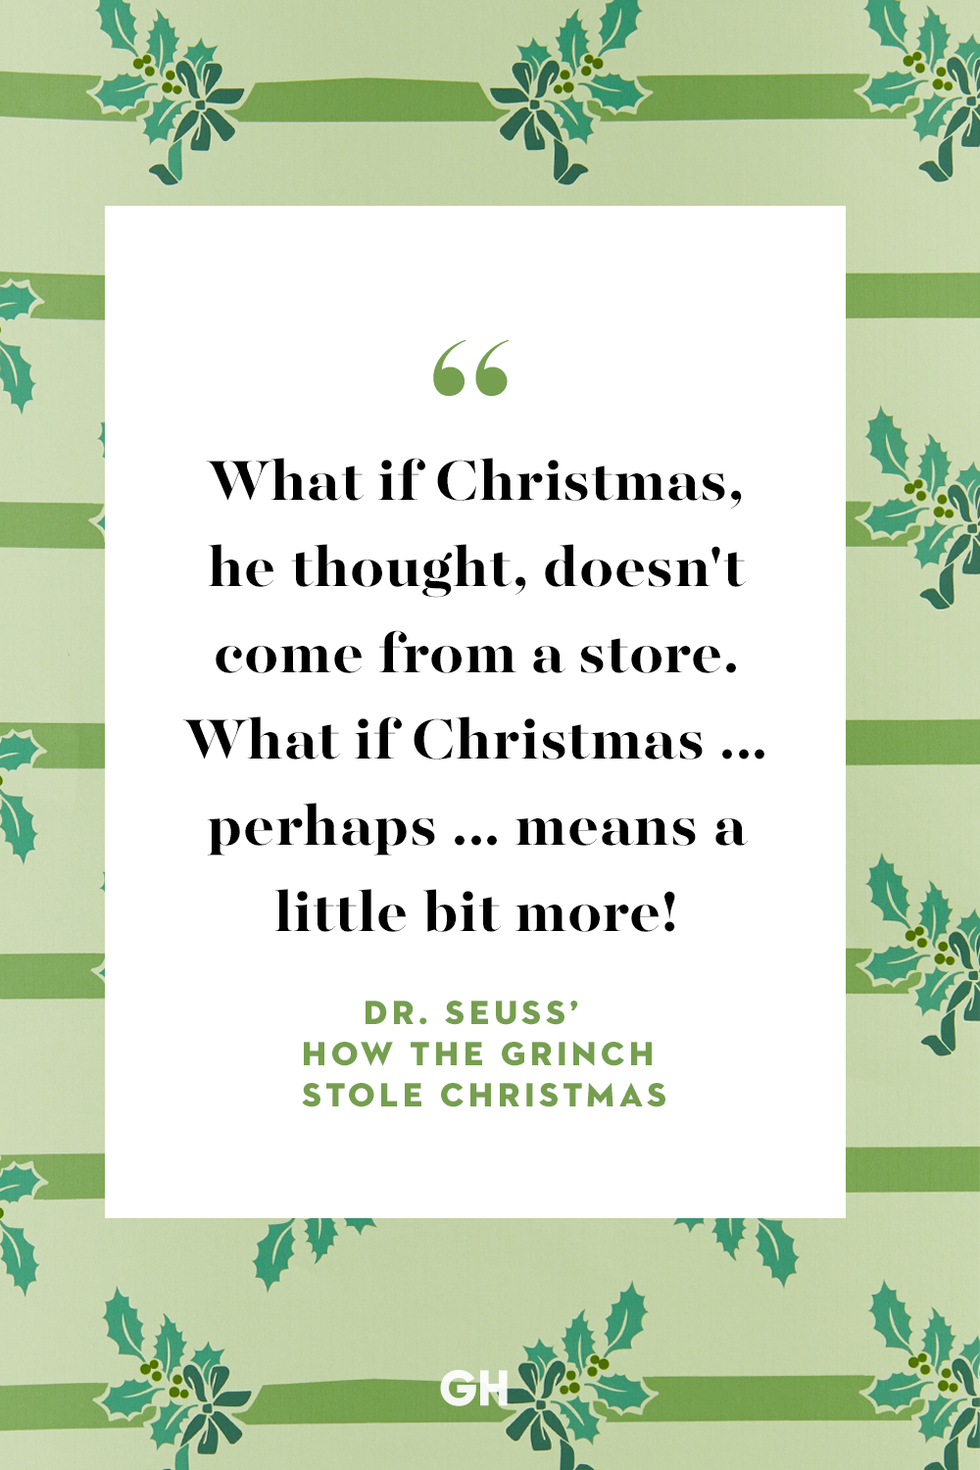 40 Iconic Christmas Movie Quotes From The Best Holiday Films Christmas Movie Quotes Best Christmas Movies Christmas Movies